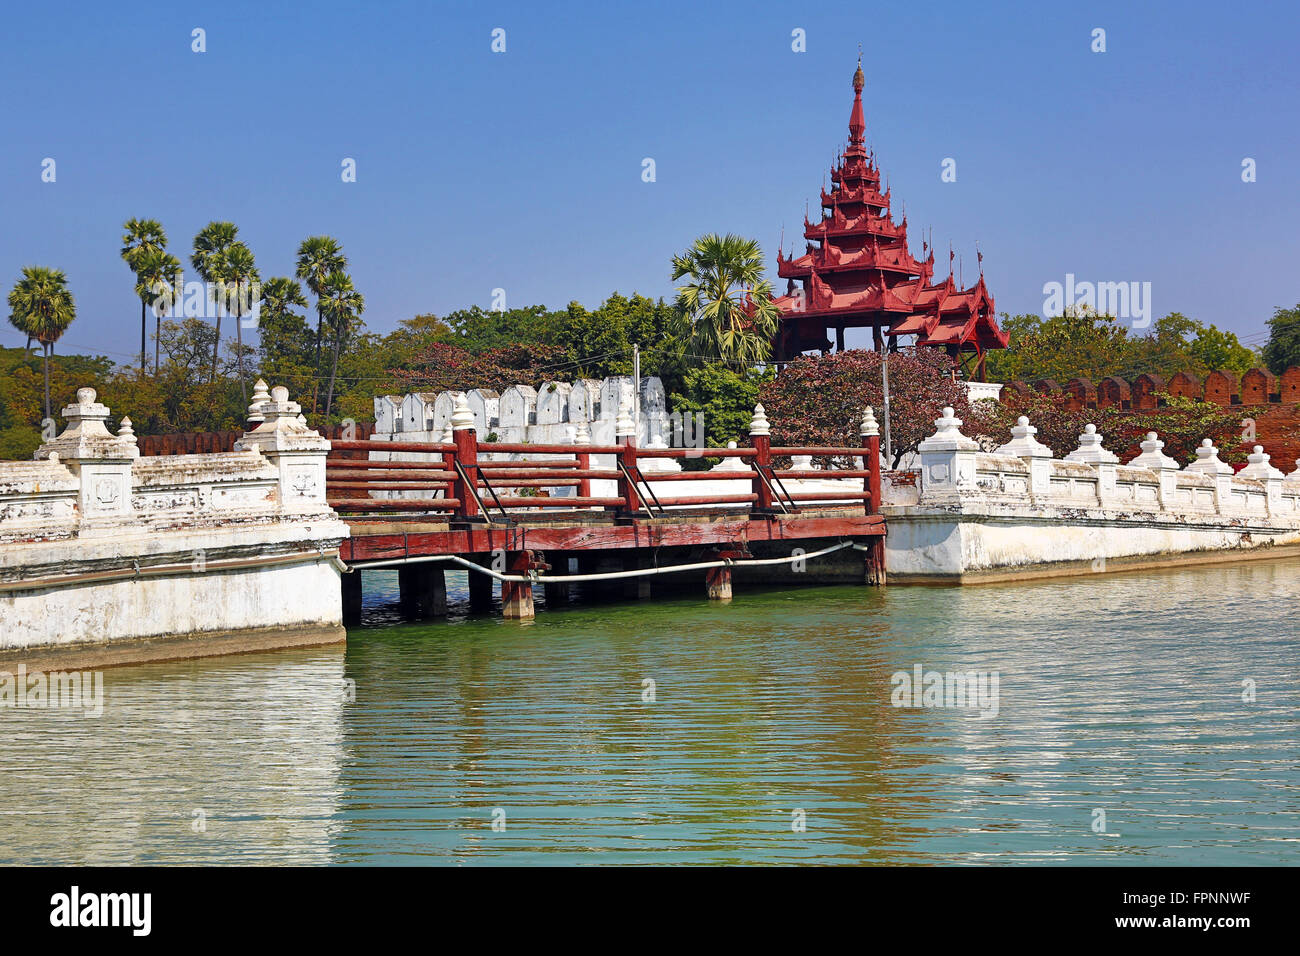 Gate and bridge over the moat of the Mandalay Palace, Mandalay, Myanmar (Burma) - Stock Image